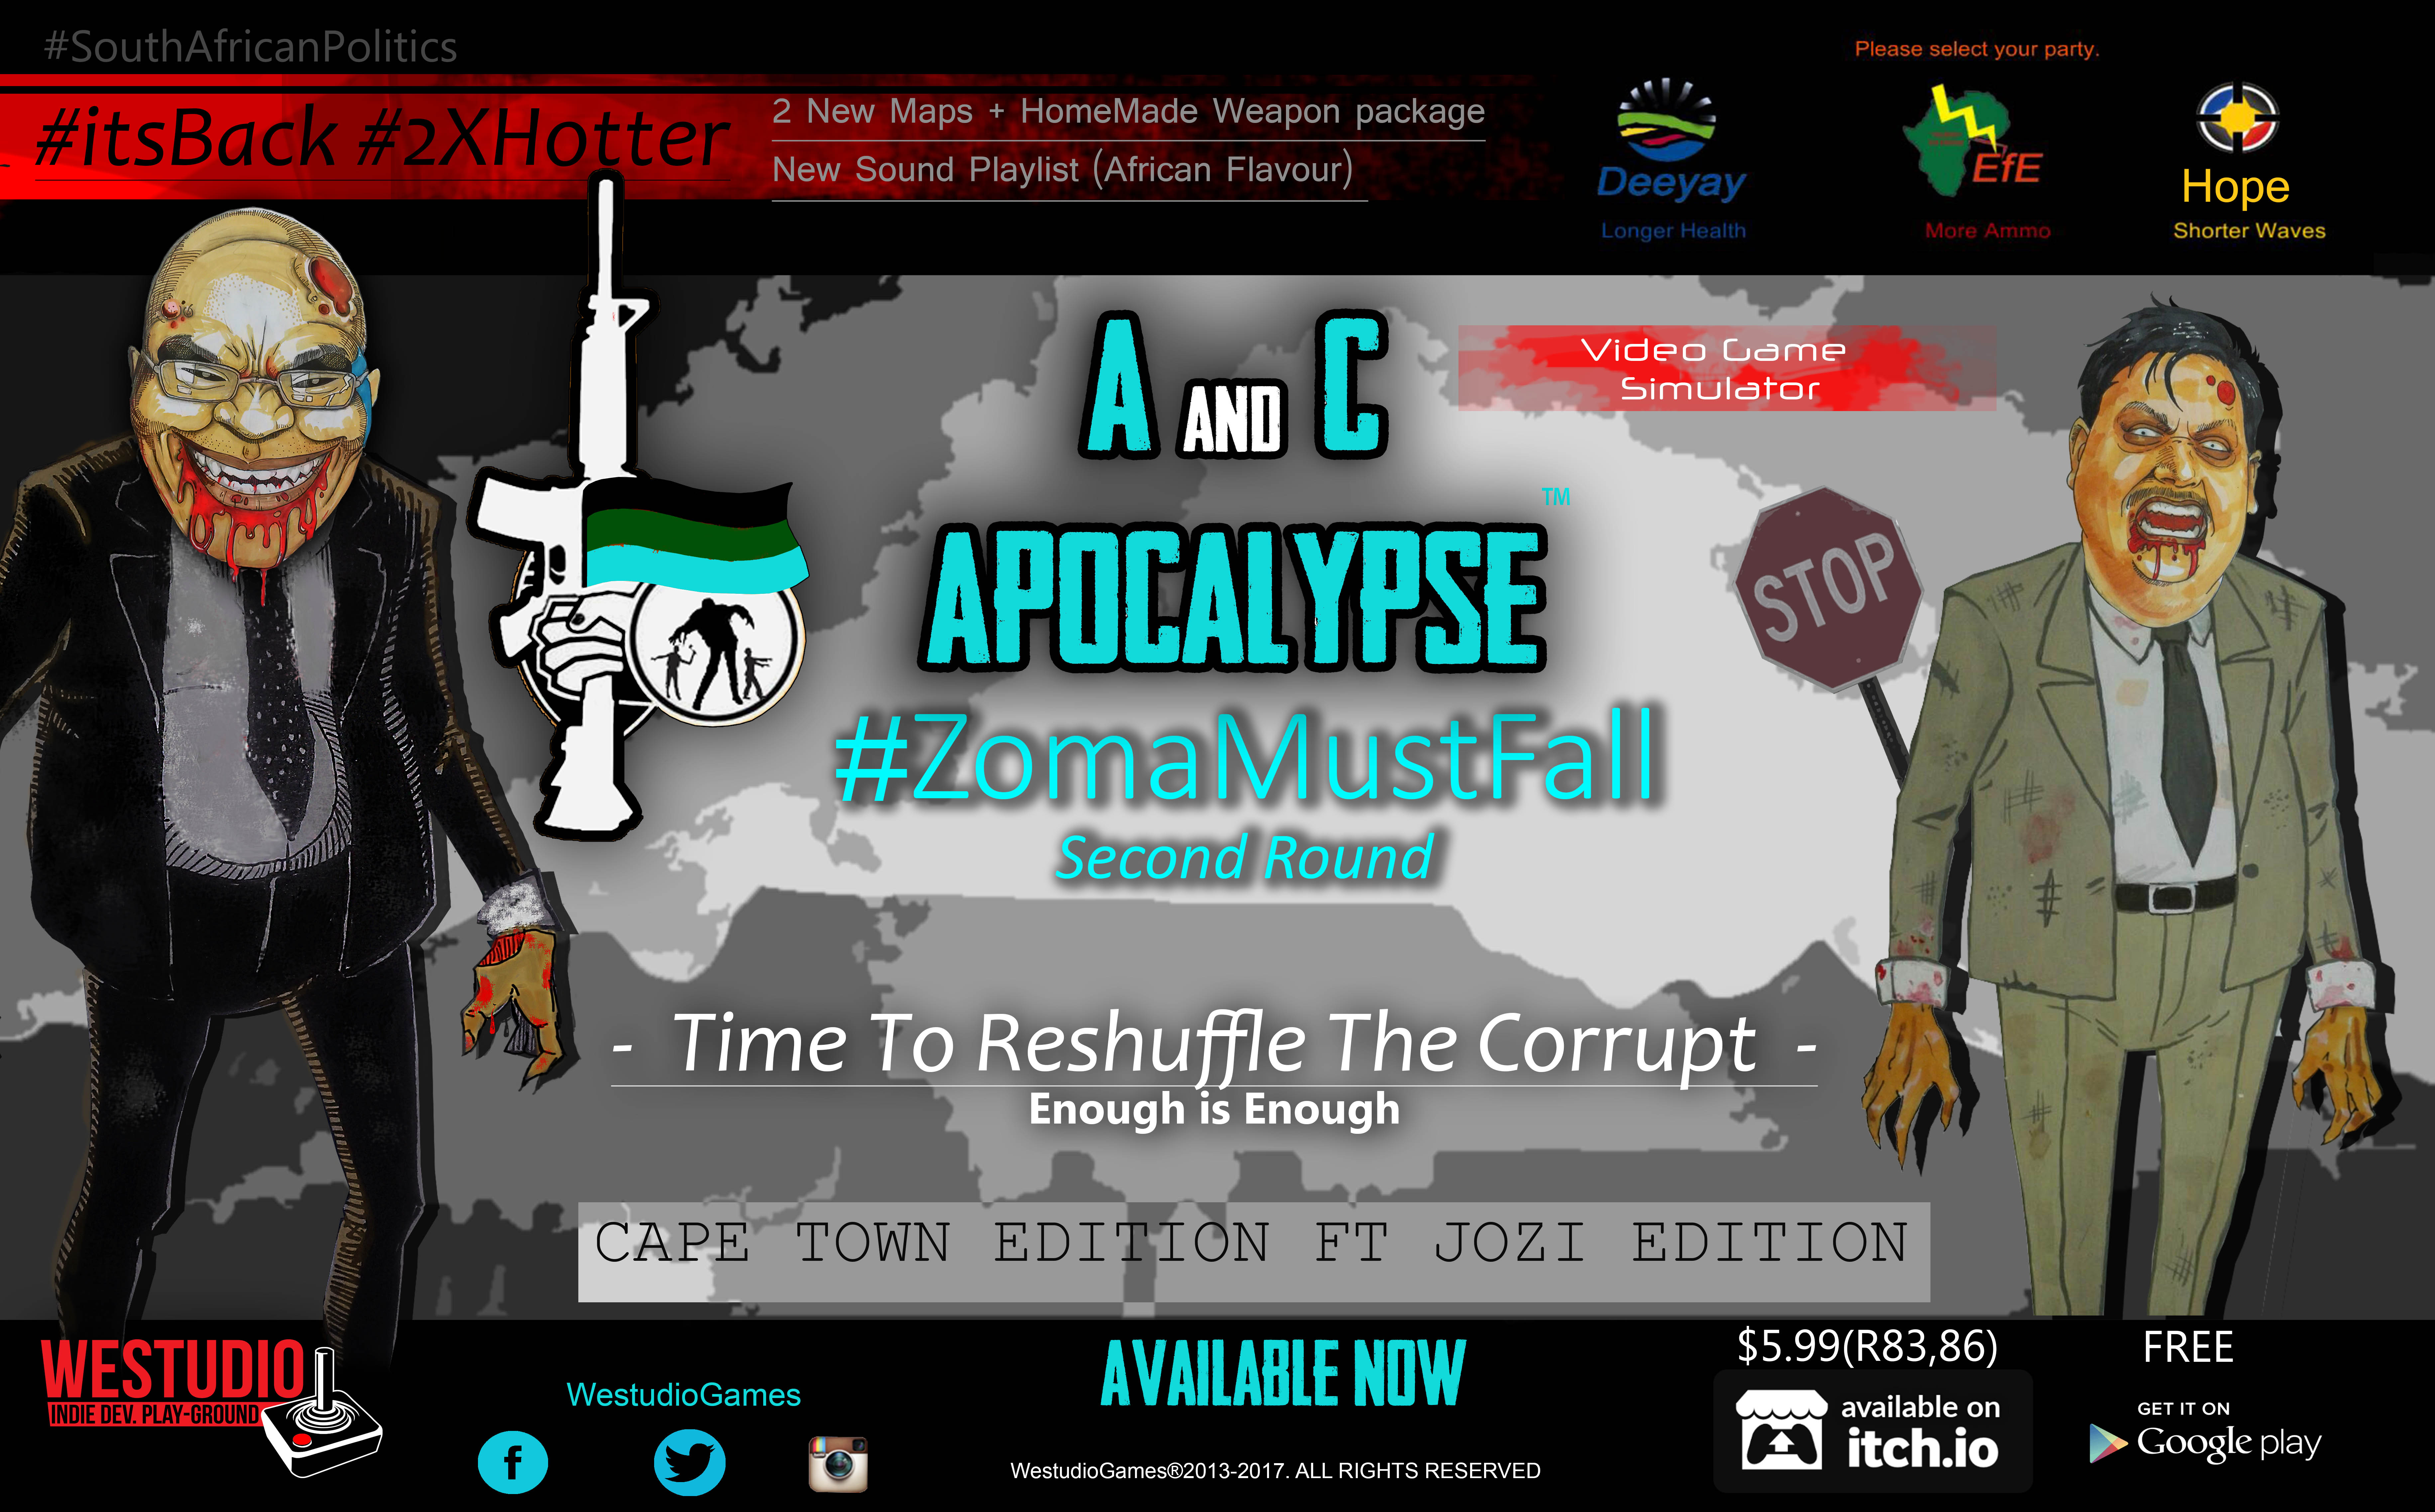 A and C apocalypse - #ZomaMustFall (Second Round)